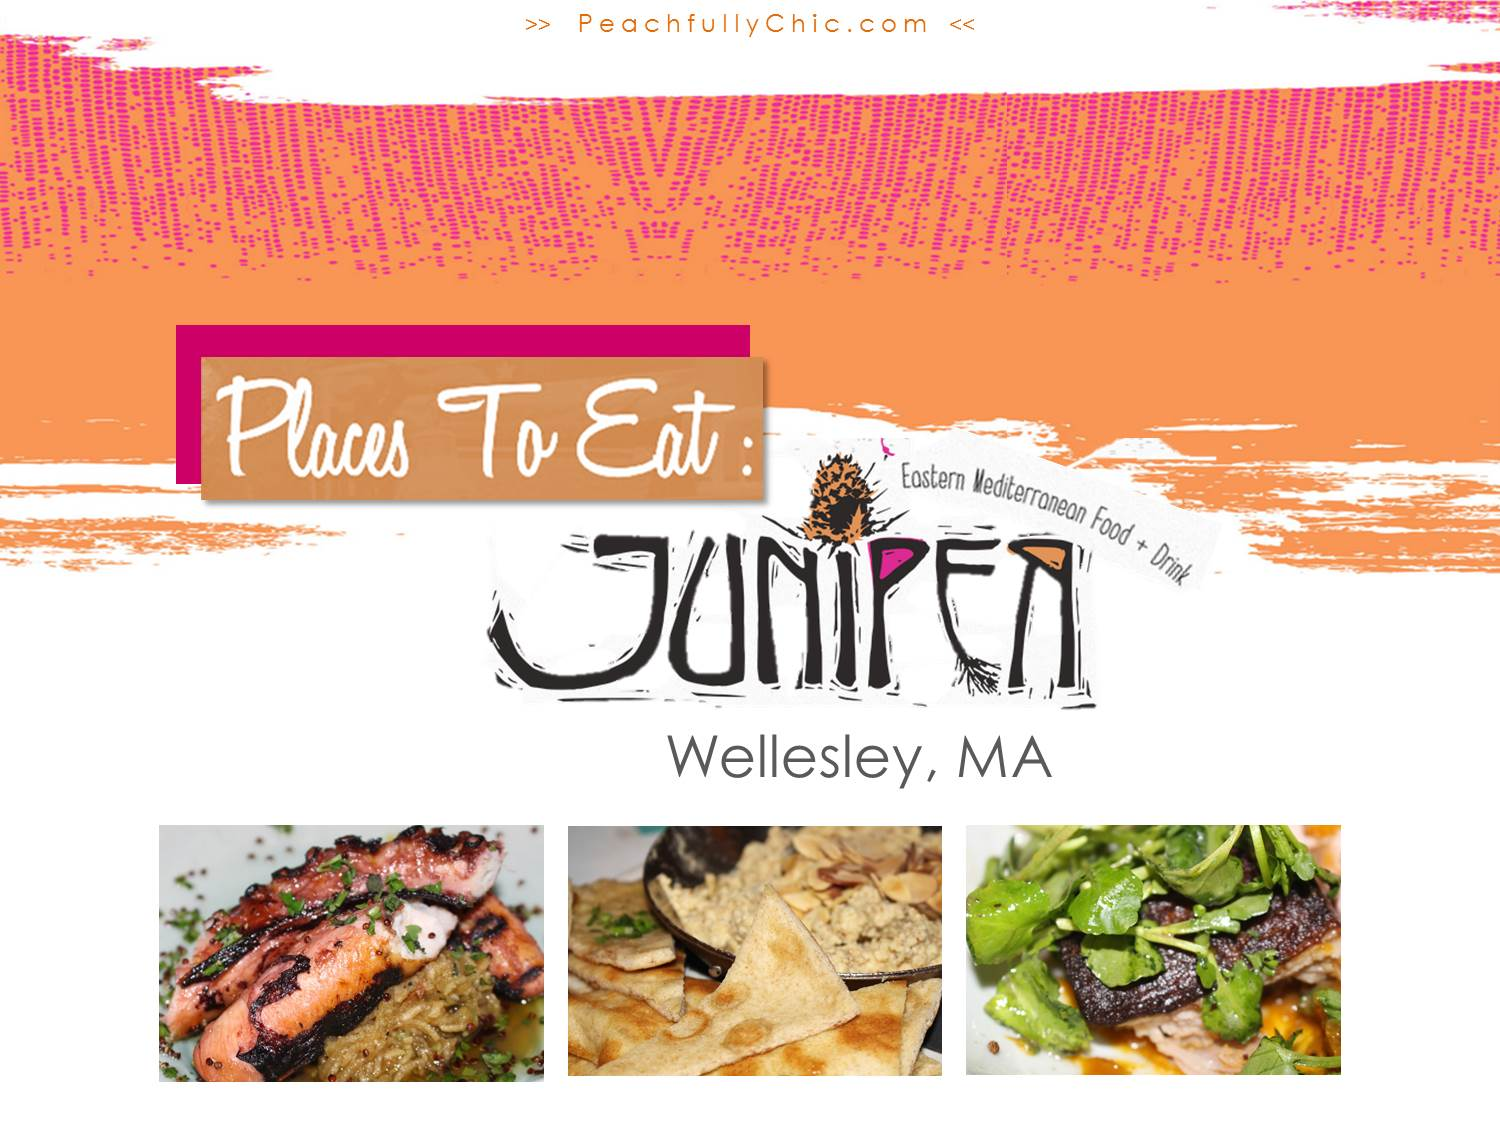 juniper-wellesley-massachusetts-restuarant-main